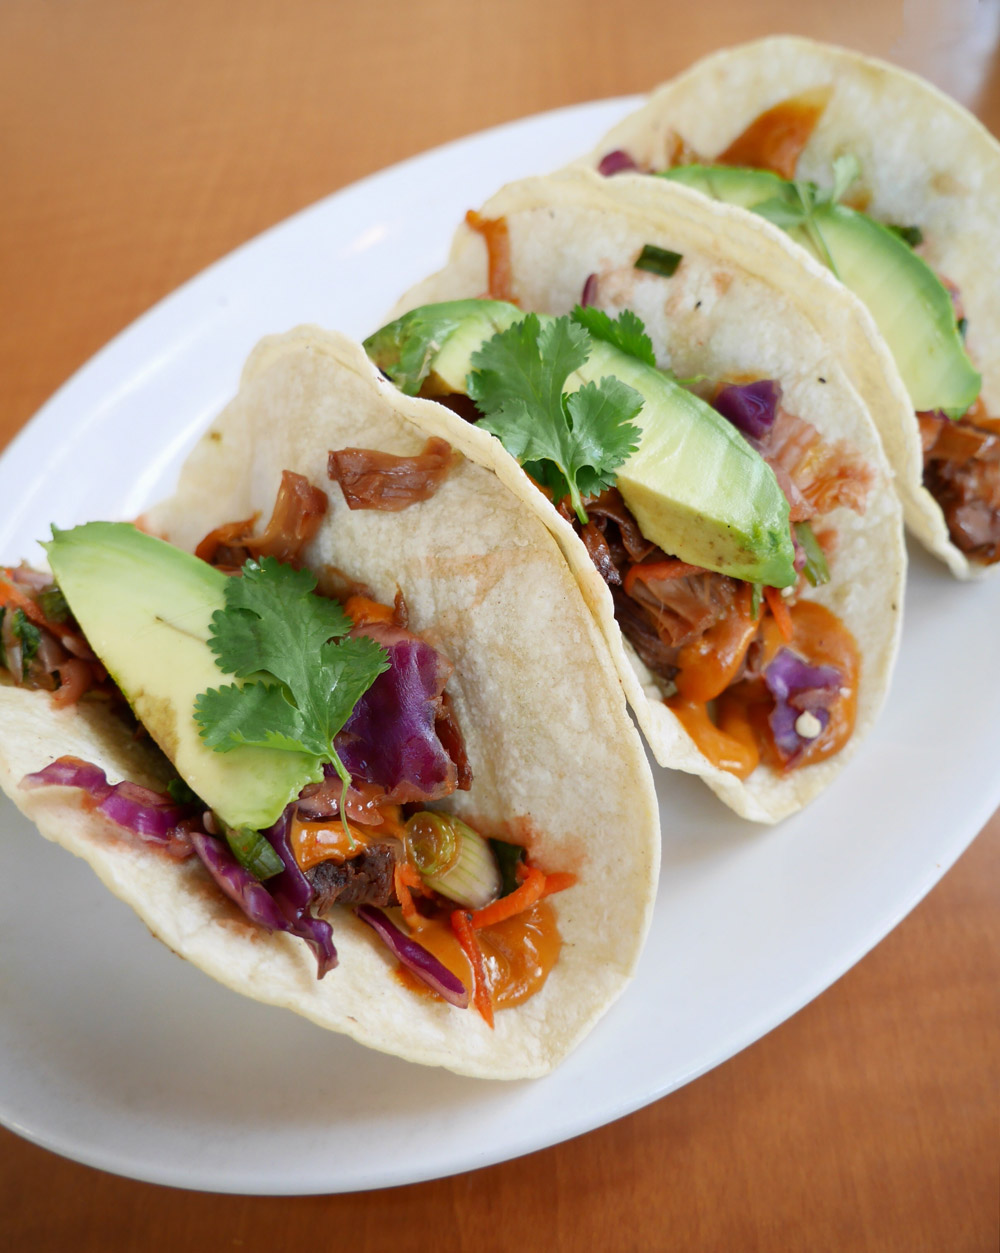 Vegan Bulgogi Kimchi Tacos, Native Foods Cafe, Bridgeport Village